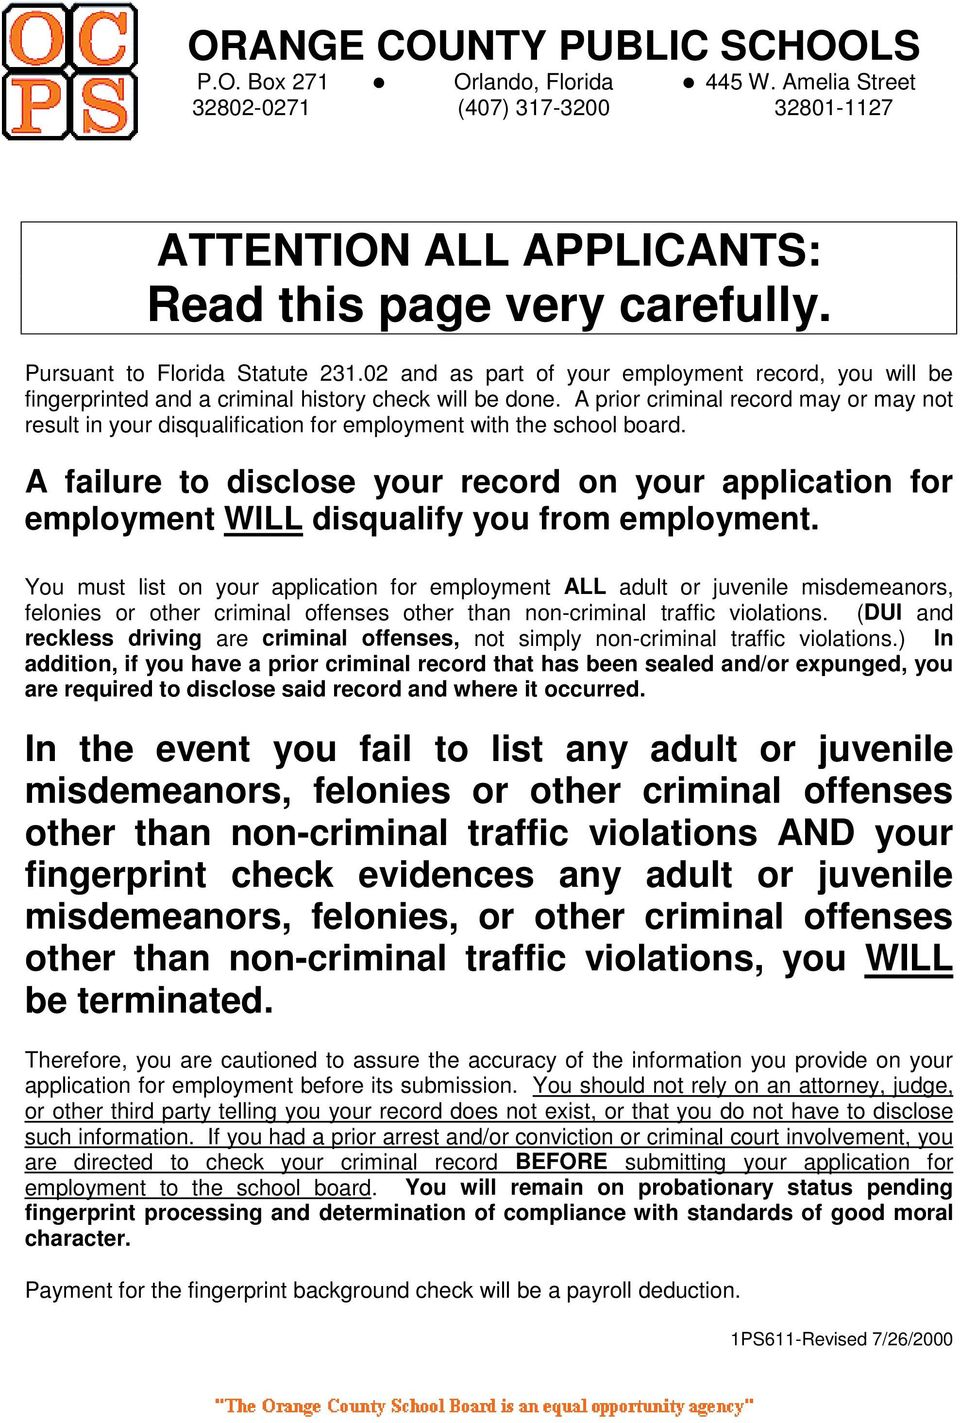 A prior criminal record may or may not result in your disqualification for employment with the school board.